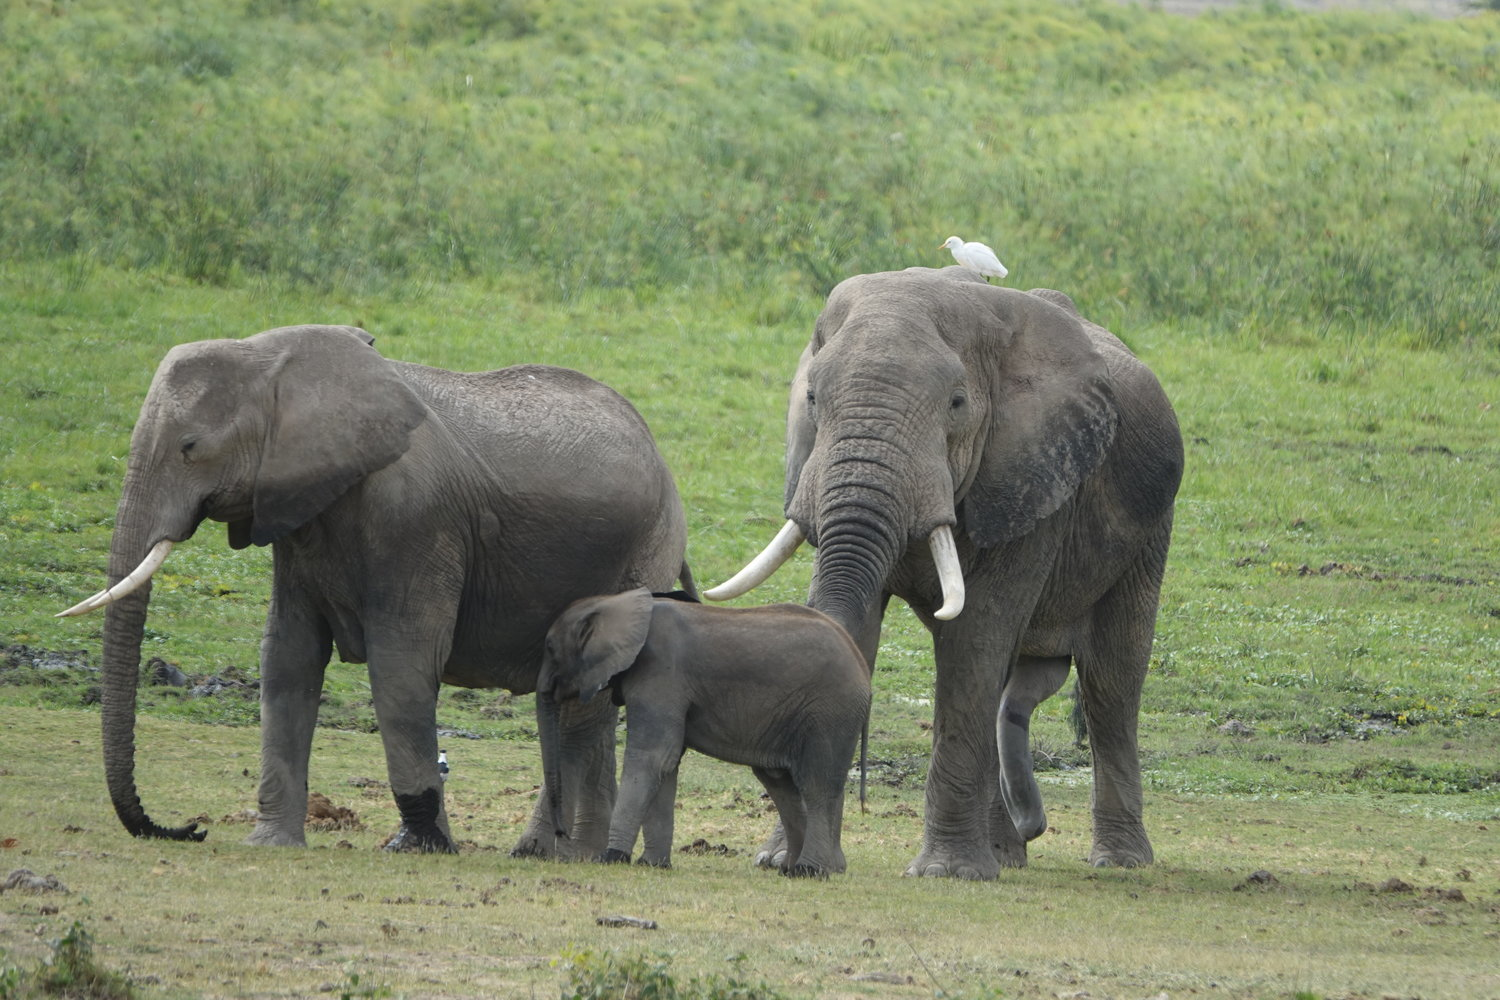 Elephant Family in Amboseli